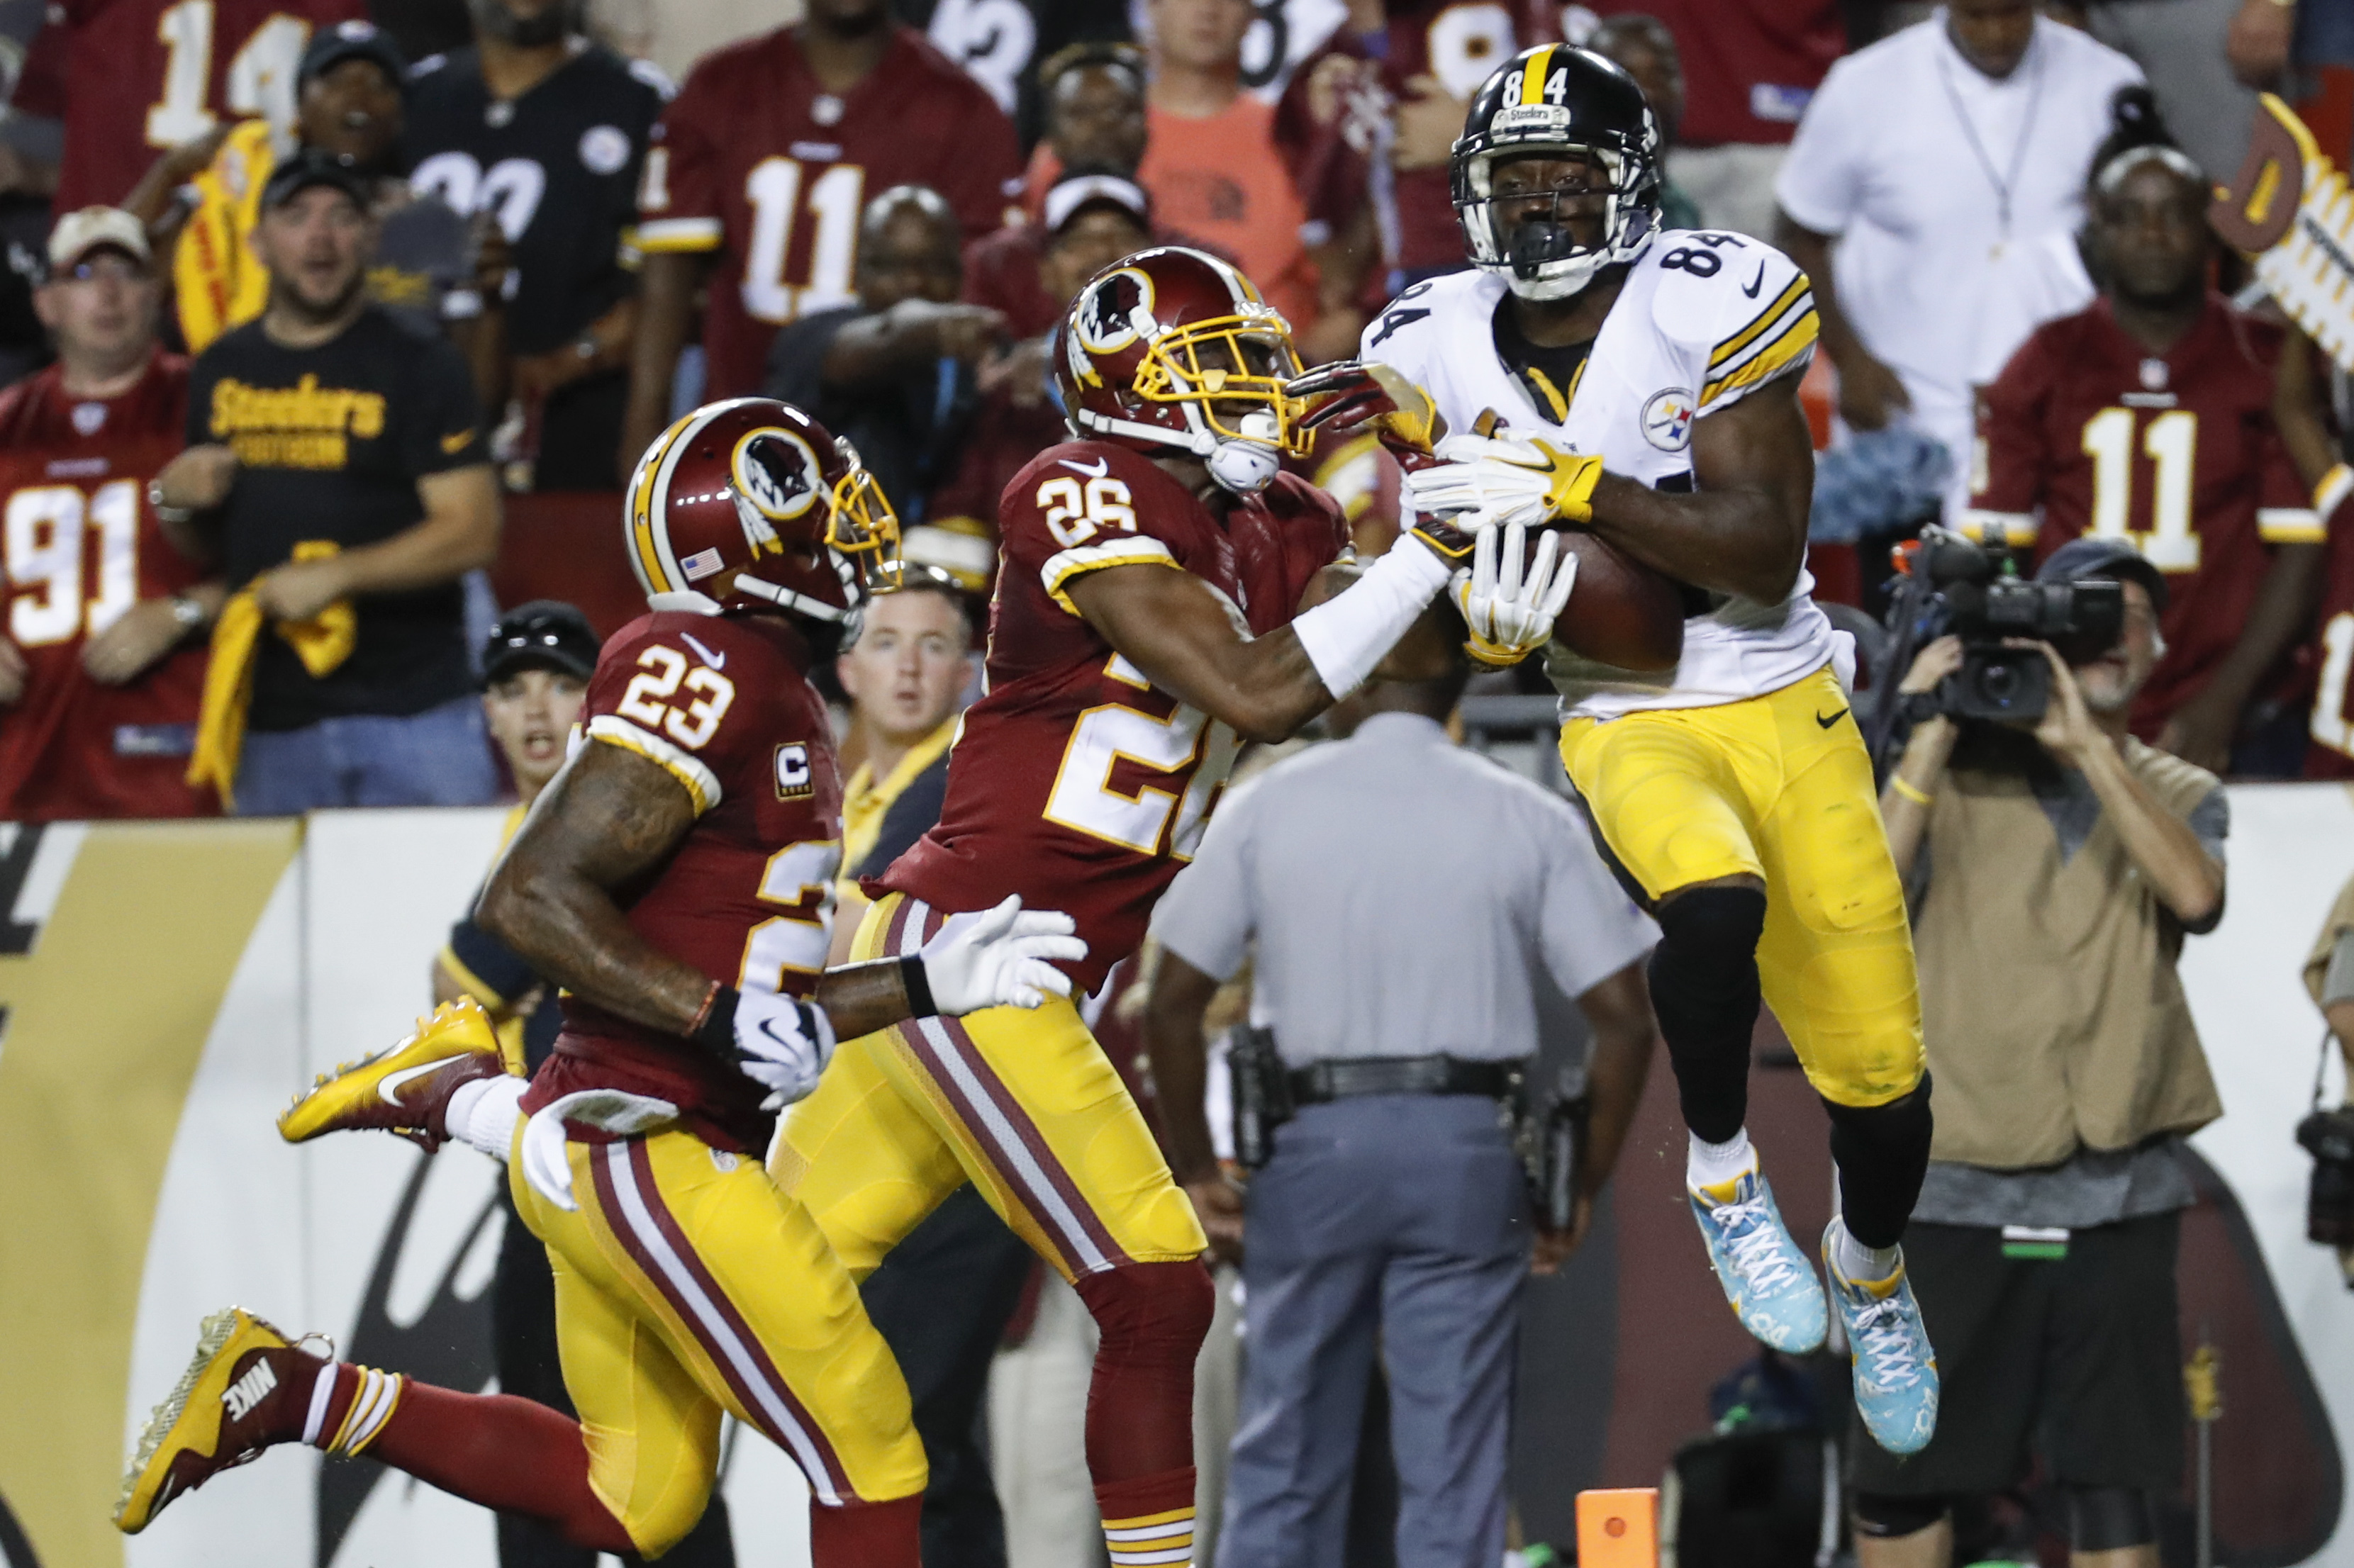 Pittsburgh Steelers wide receiver Antonio Brown (84) pulls in a touchdown pass under pressure from Washington Redskins cornerback Bashaud Breeland (26) during the first half of an NFL football game in Landover, Md., Monday, Sept. 12, 2016. (AP Photo/Alex